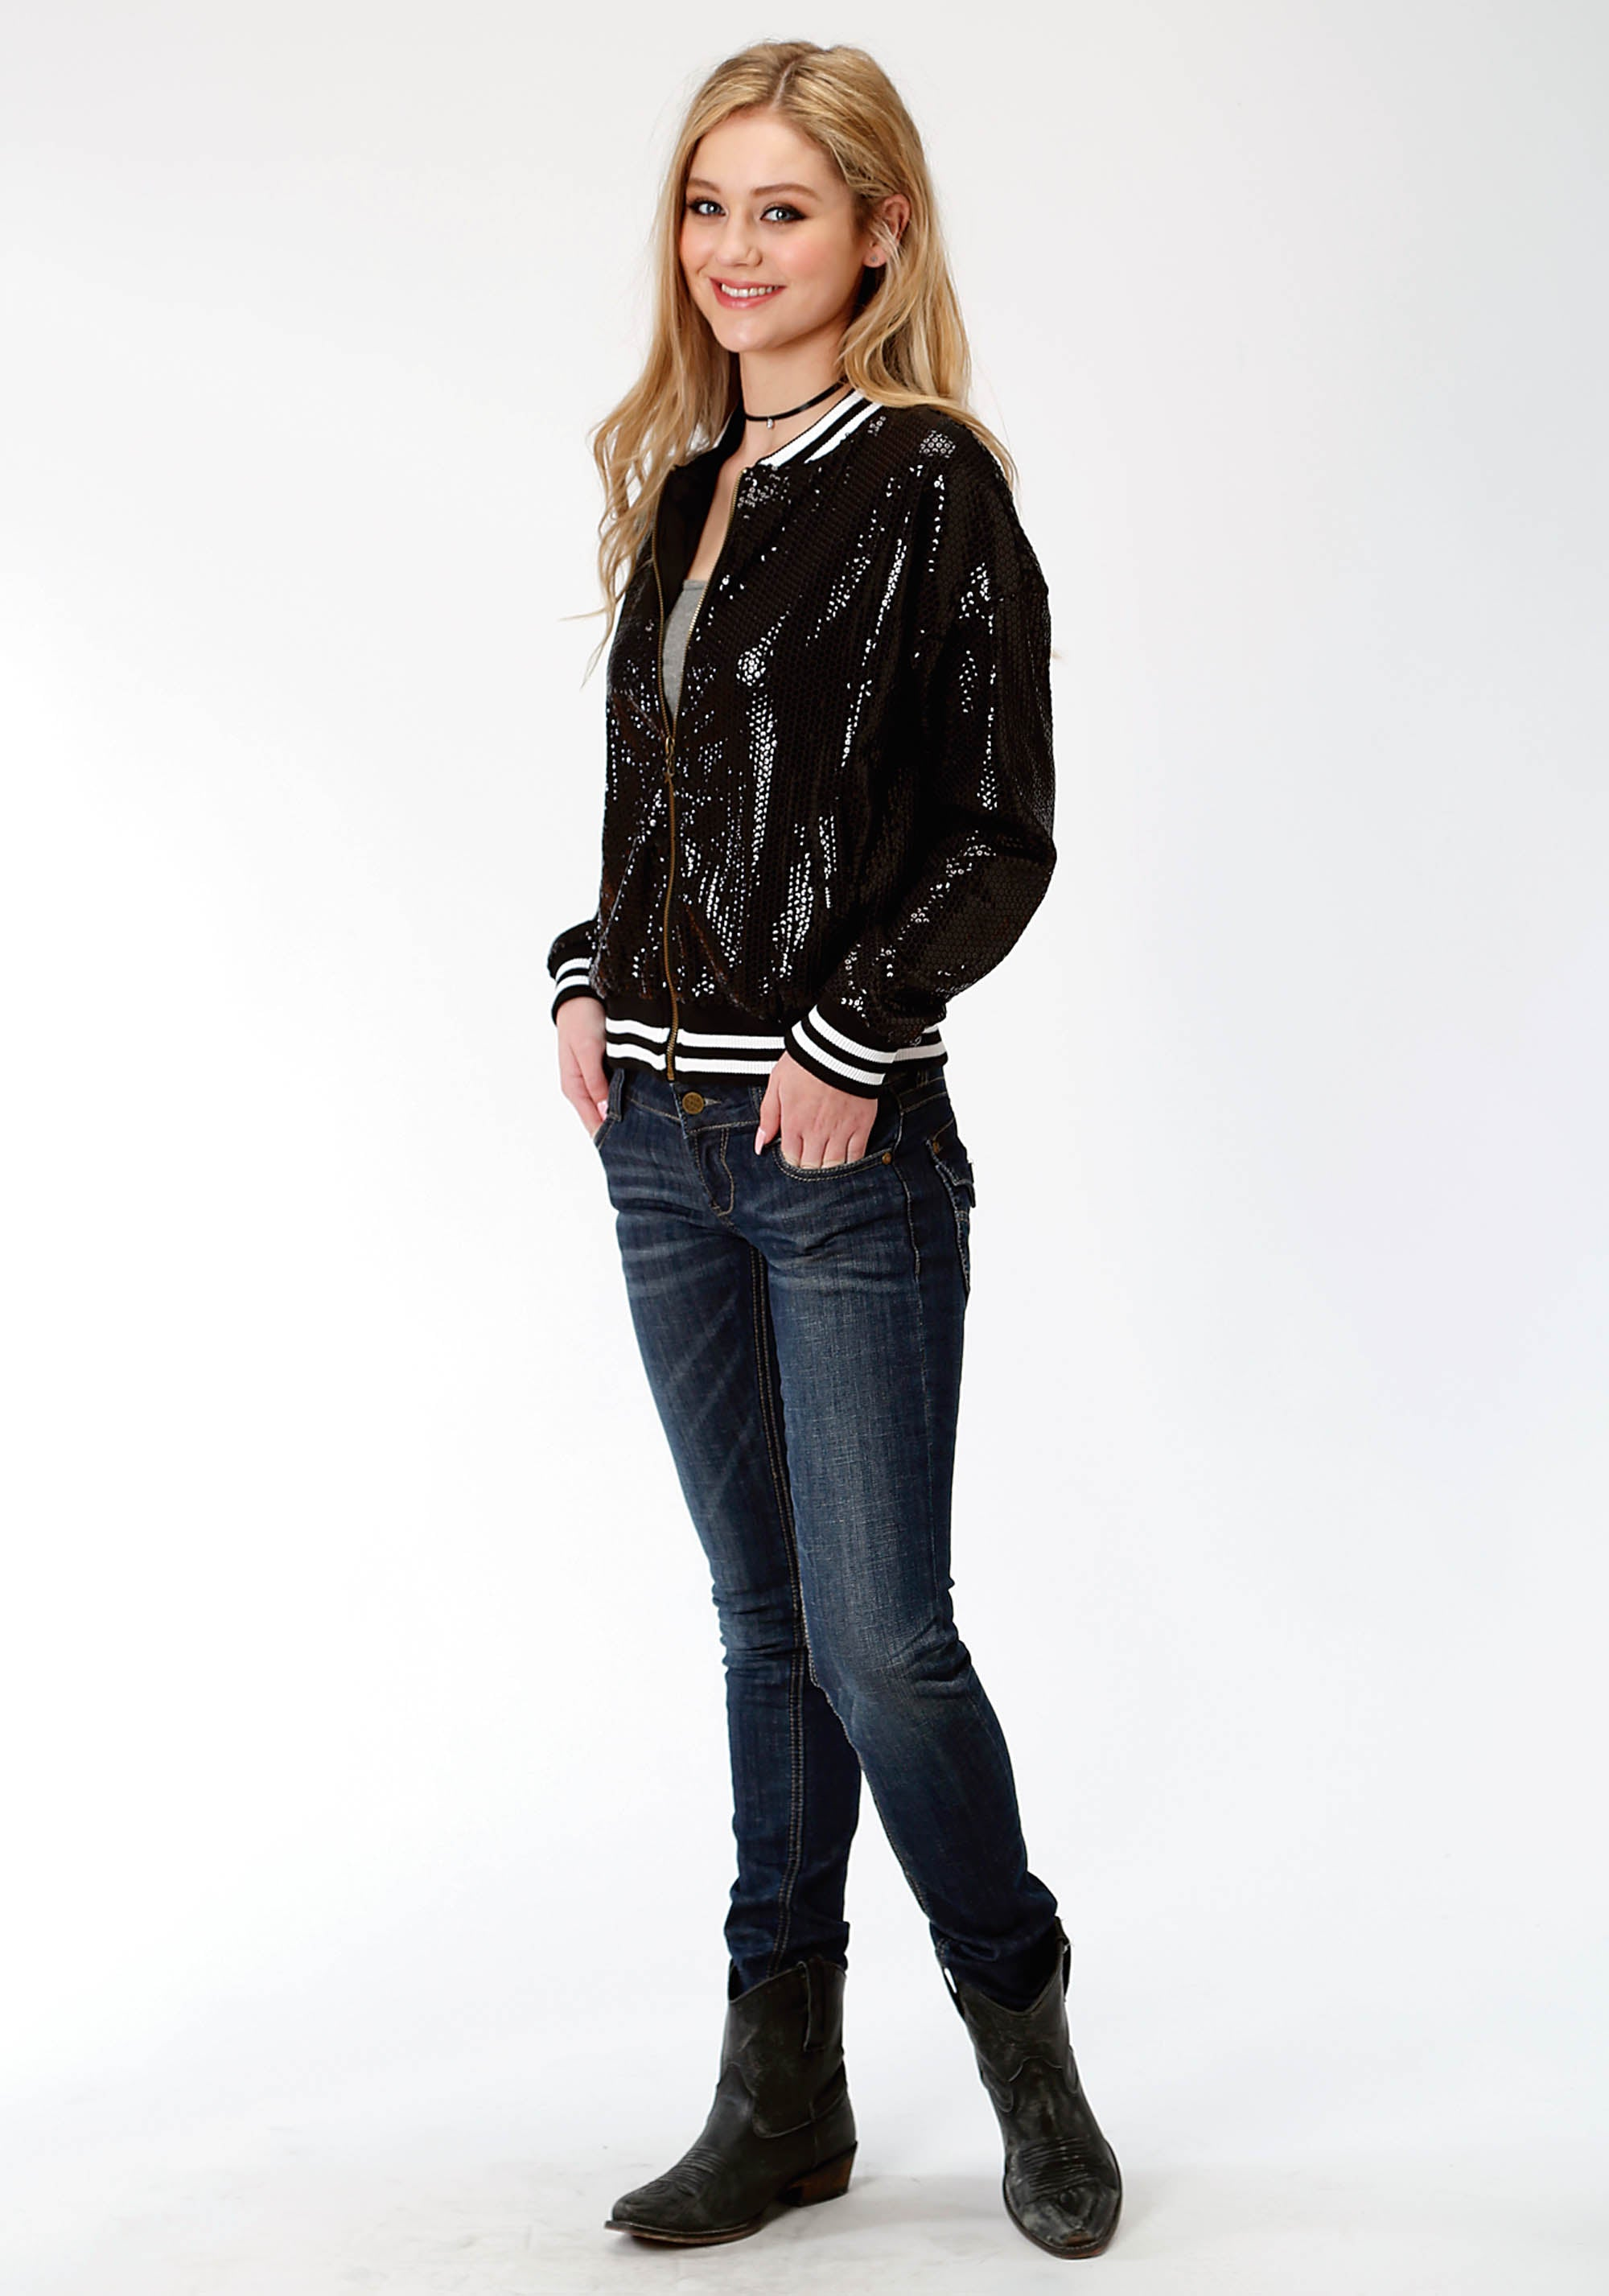 ROPER WOMENS BLACK 0470 LADIES SEQUIN BOMBER STYLE JACKET FIVE STAR COLLECTION- FALL II JACKET